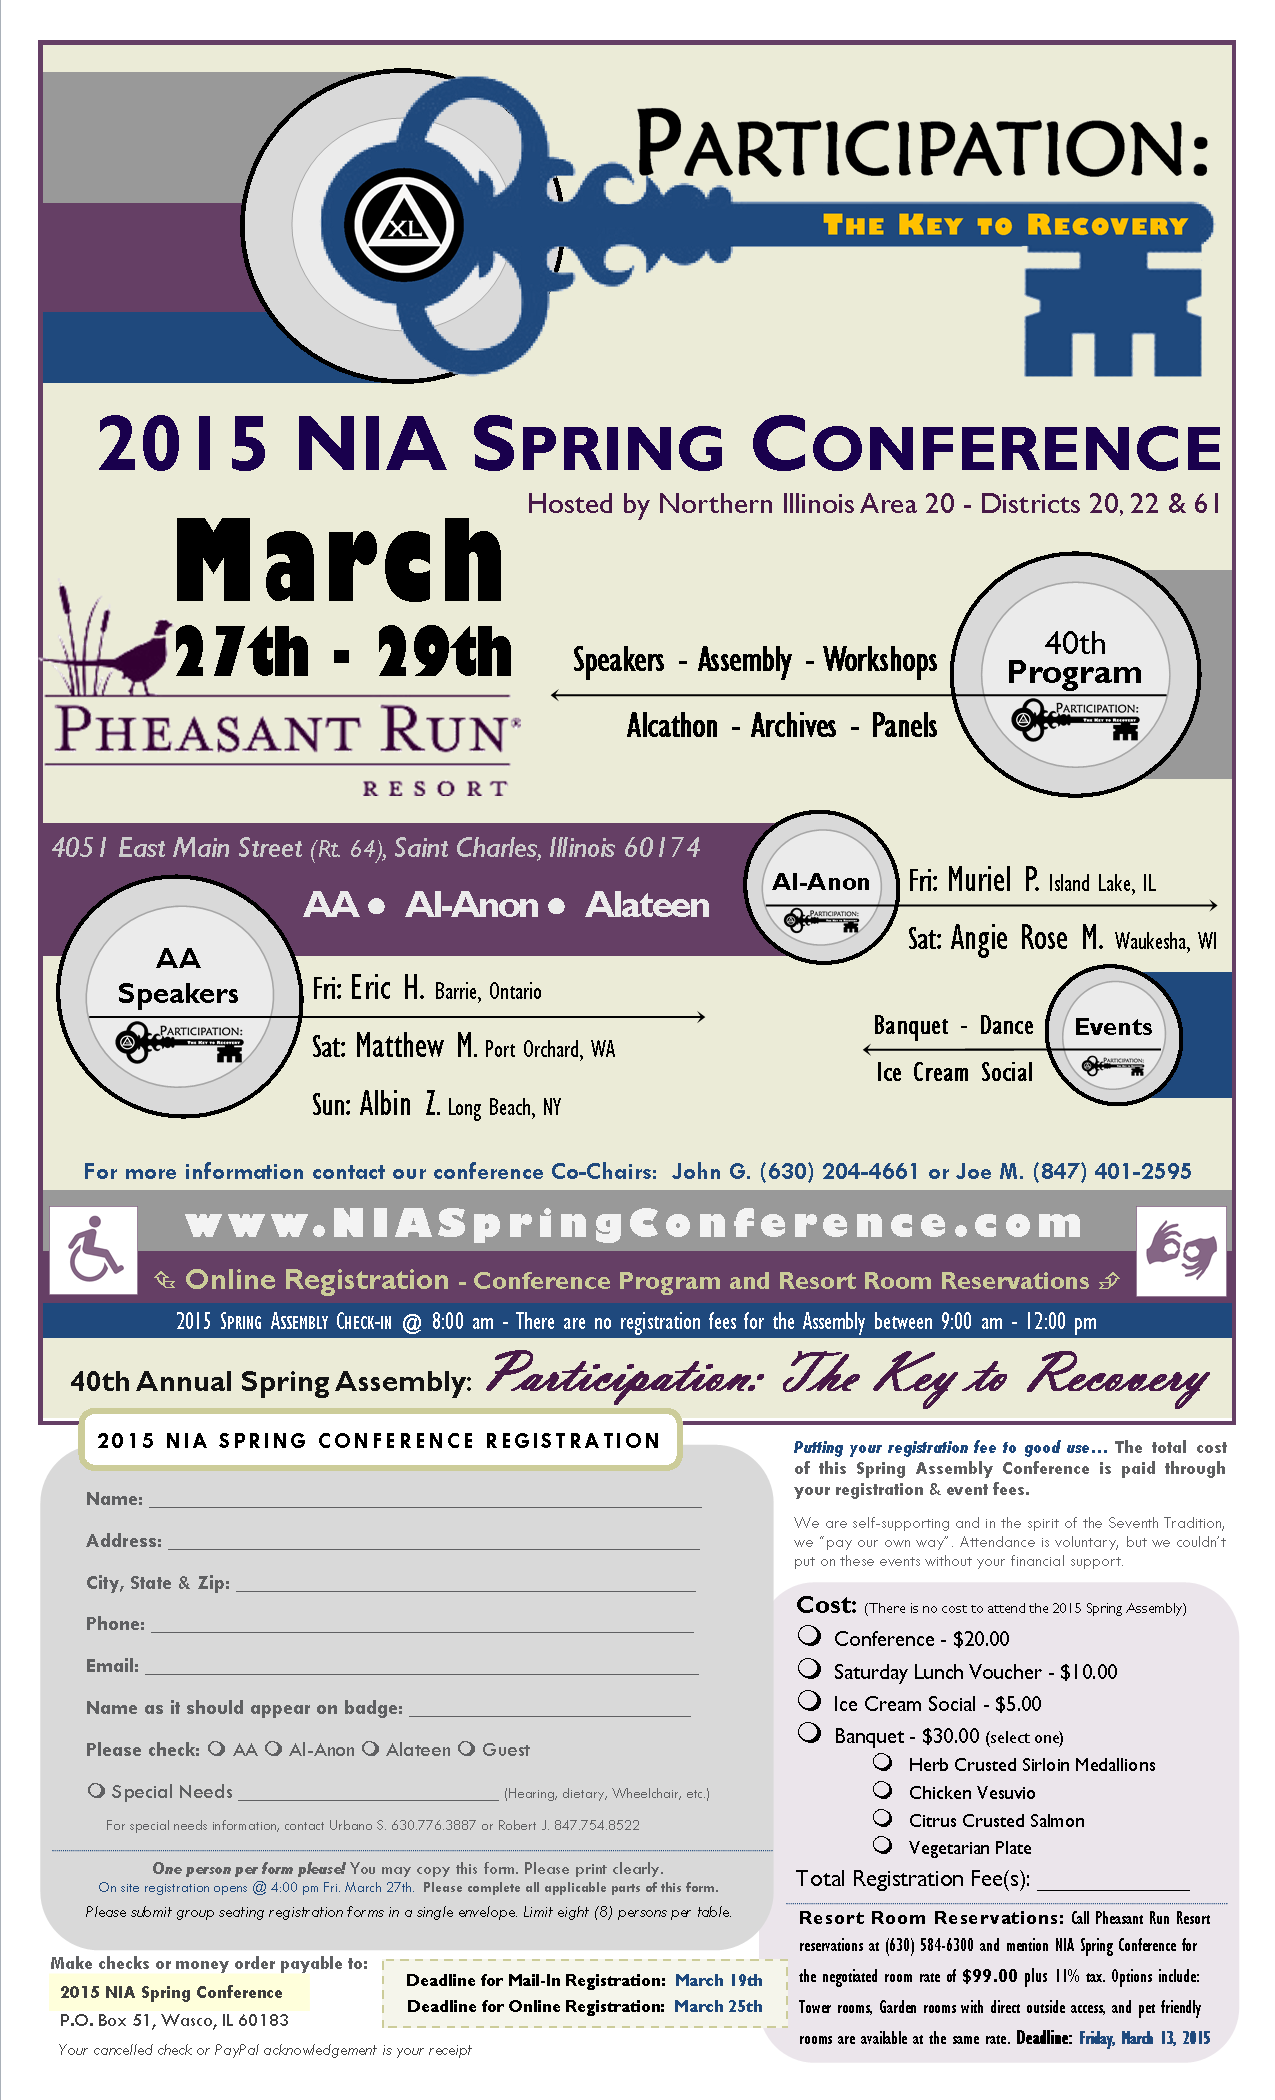 2015 NIA Spring Conference - Perception: The Key to Recovery 5